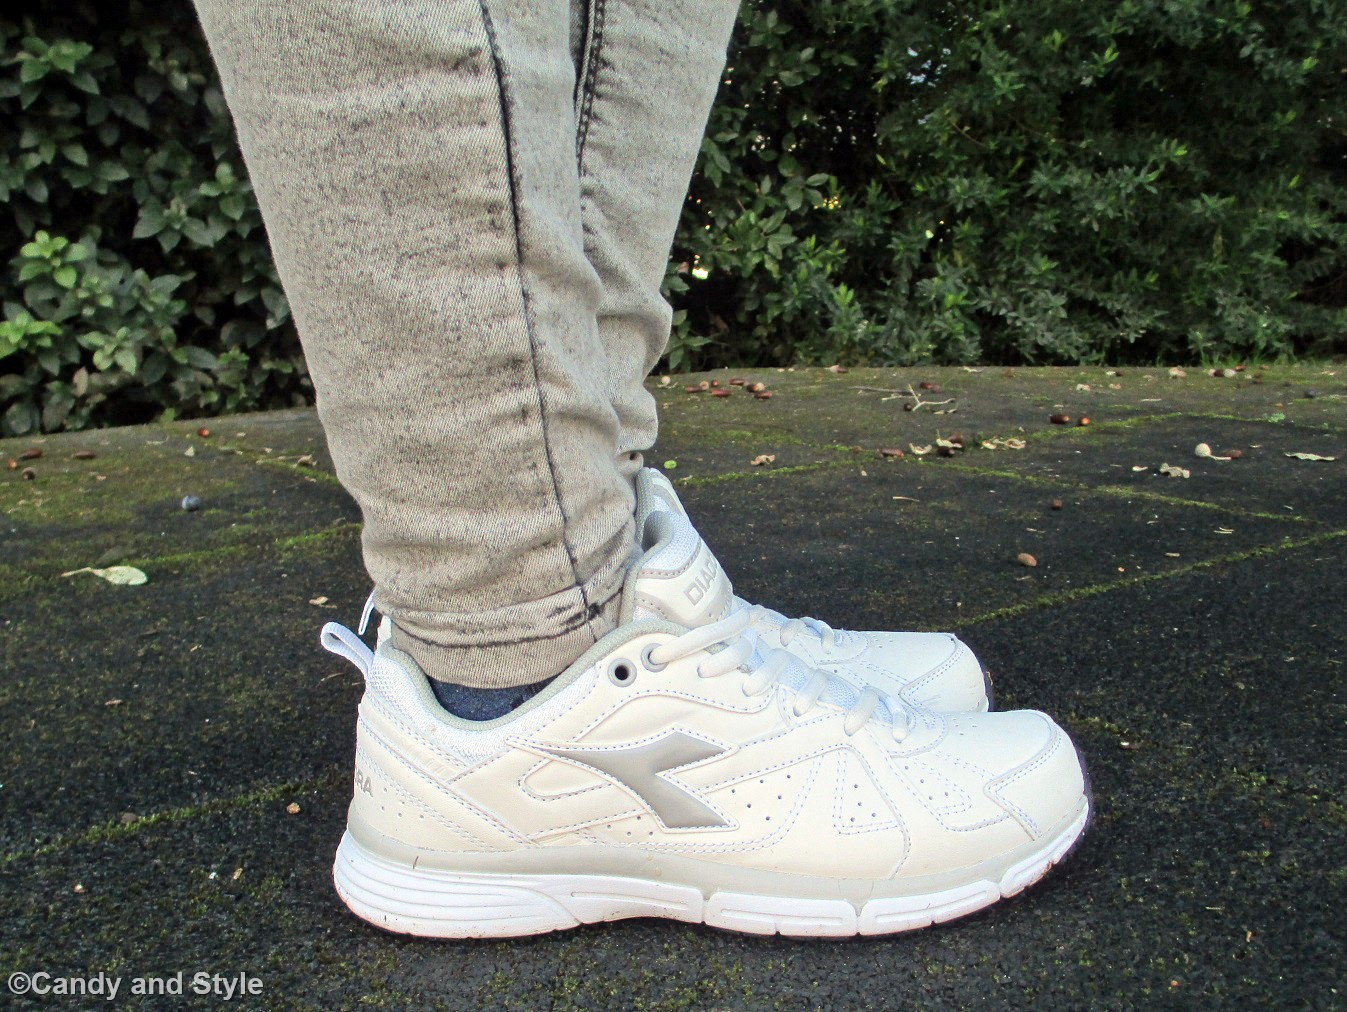 WhiteTrainers+Jeggings